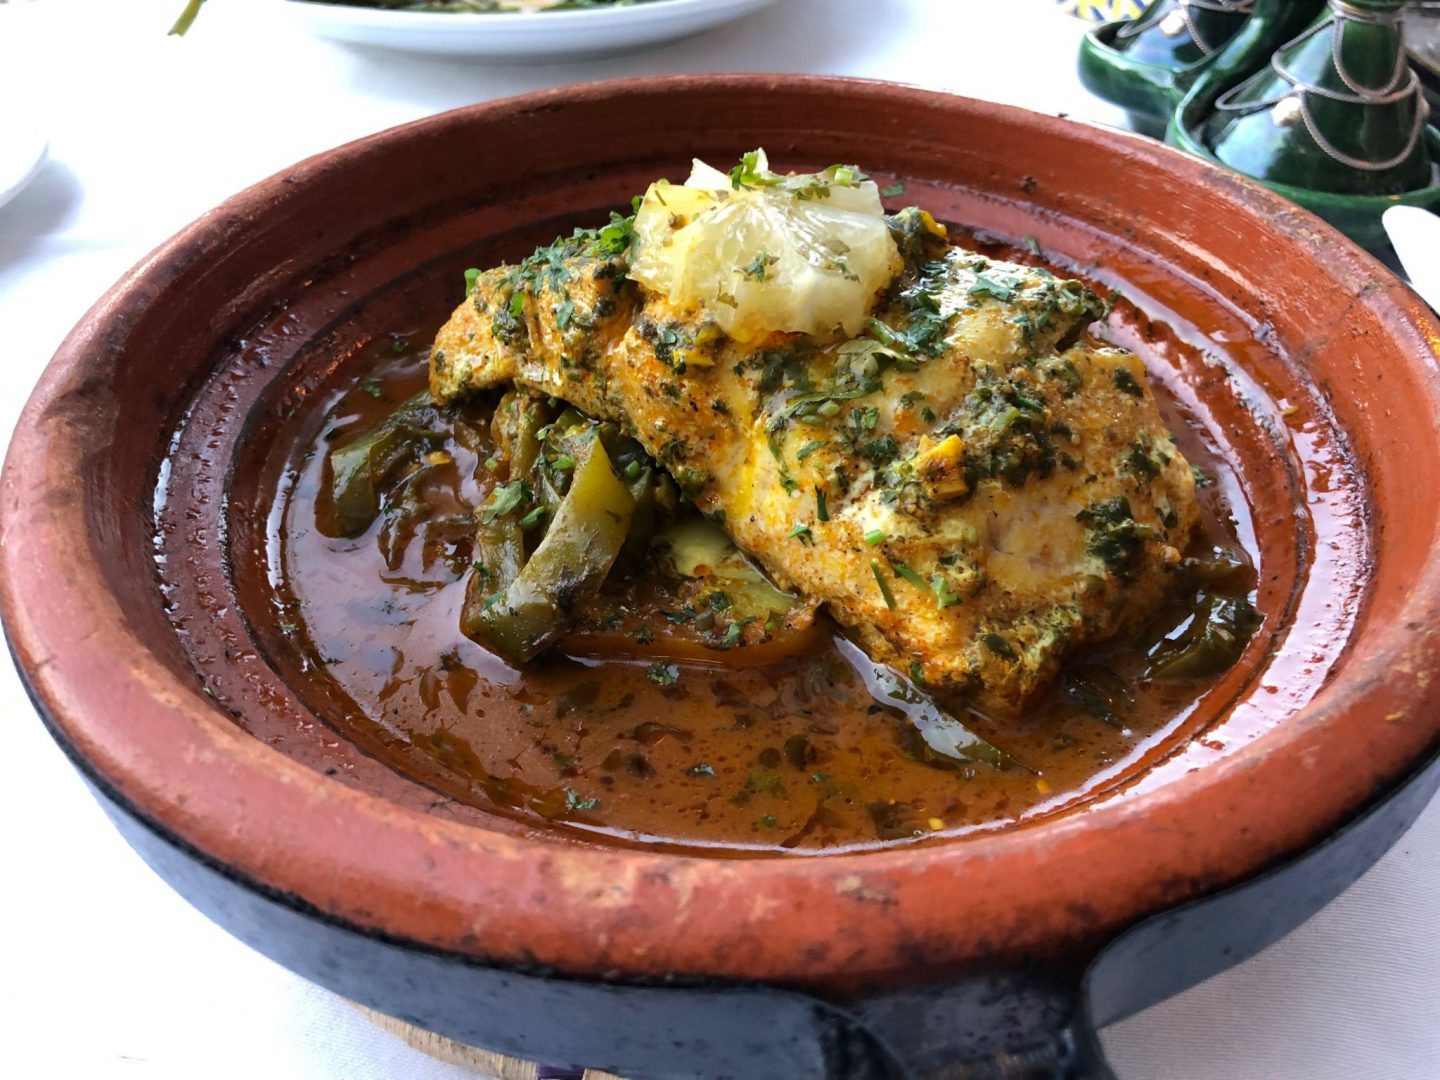 Fish tagine was superb and my second best dish at the Kasbah..just behind the lamb tagine